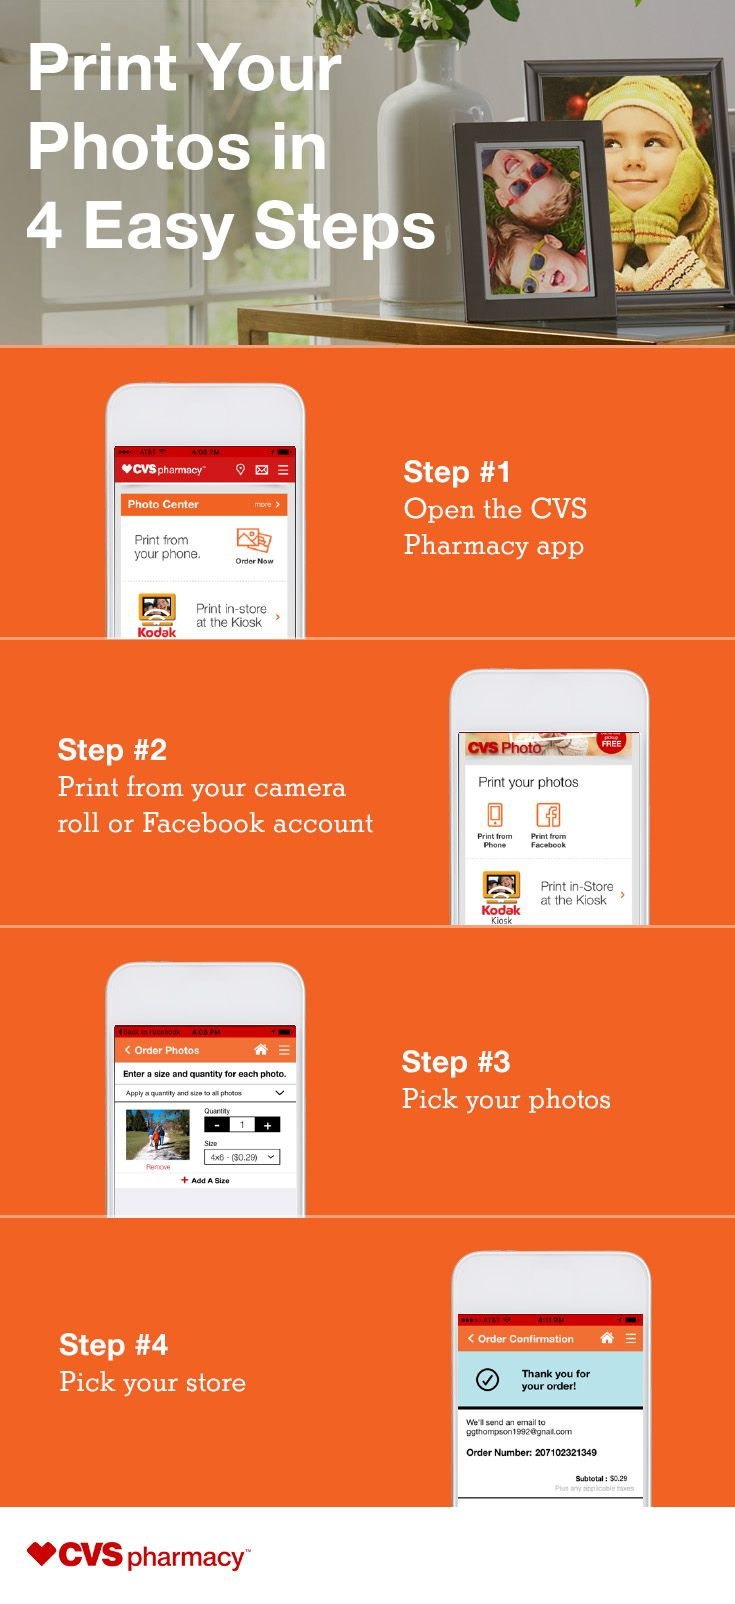 "It's easy to turn your Facebook photos into lasting memories — everything you need is in the CVS Pharmacy app. Choose your favorites and have them printed and ready to pick up in no time! 1. Sign in to the CVS Pharmacy app on your phone. 2. Scroll down and tap the Photo Center and choose your source, like your photos or Facebook. 3. Choose your photos, tap ""Done selecting"", and choose size and quantity. 4. The CVS Pharmacy app will find the CVS Pharmacy pickup locations nearest you."